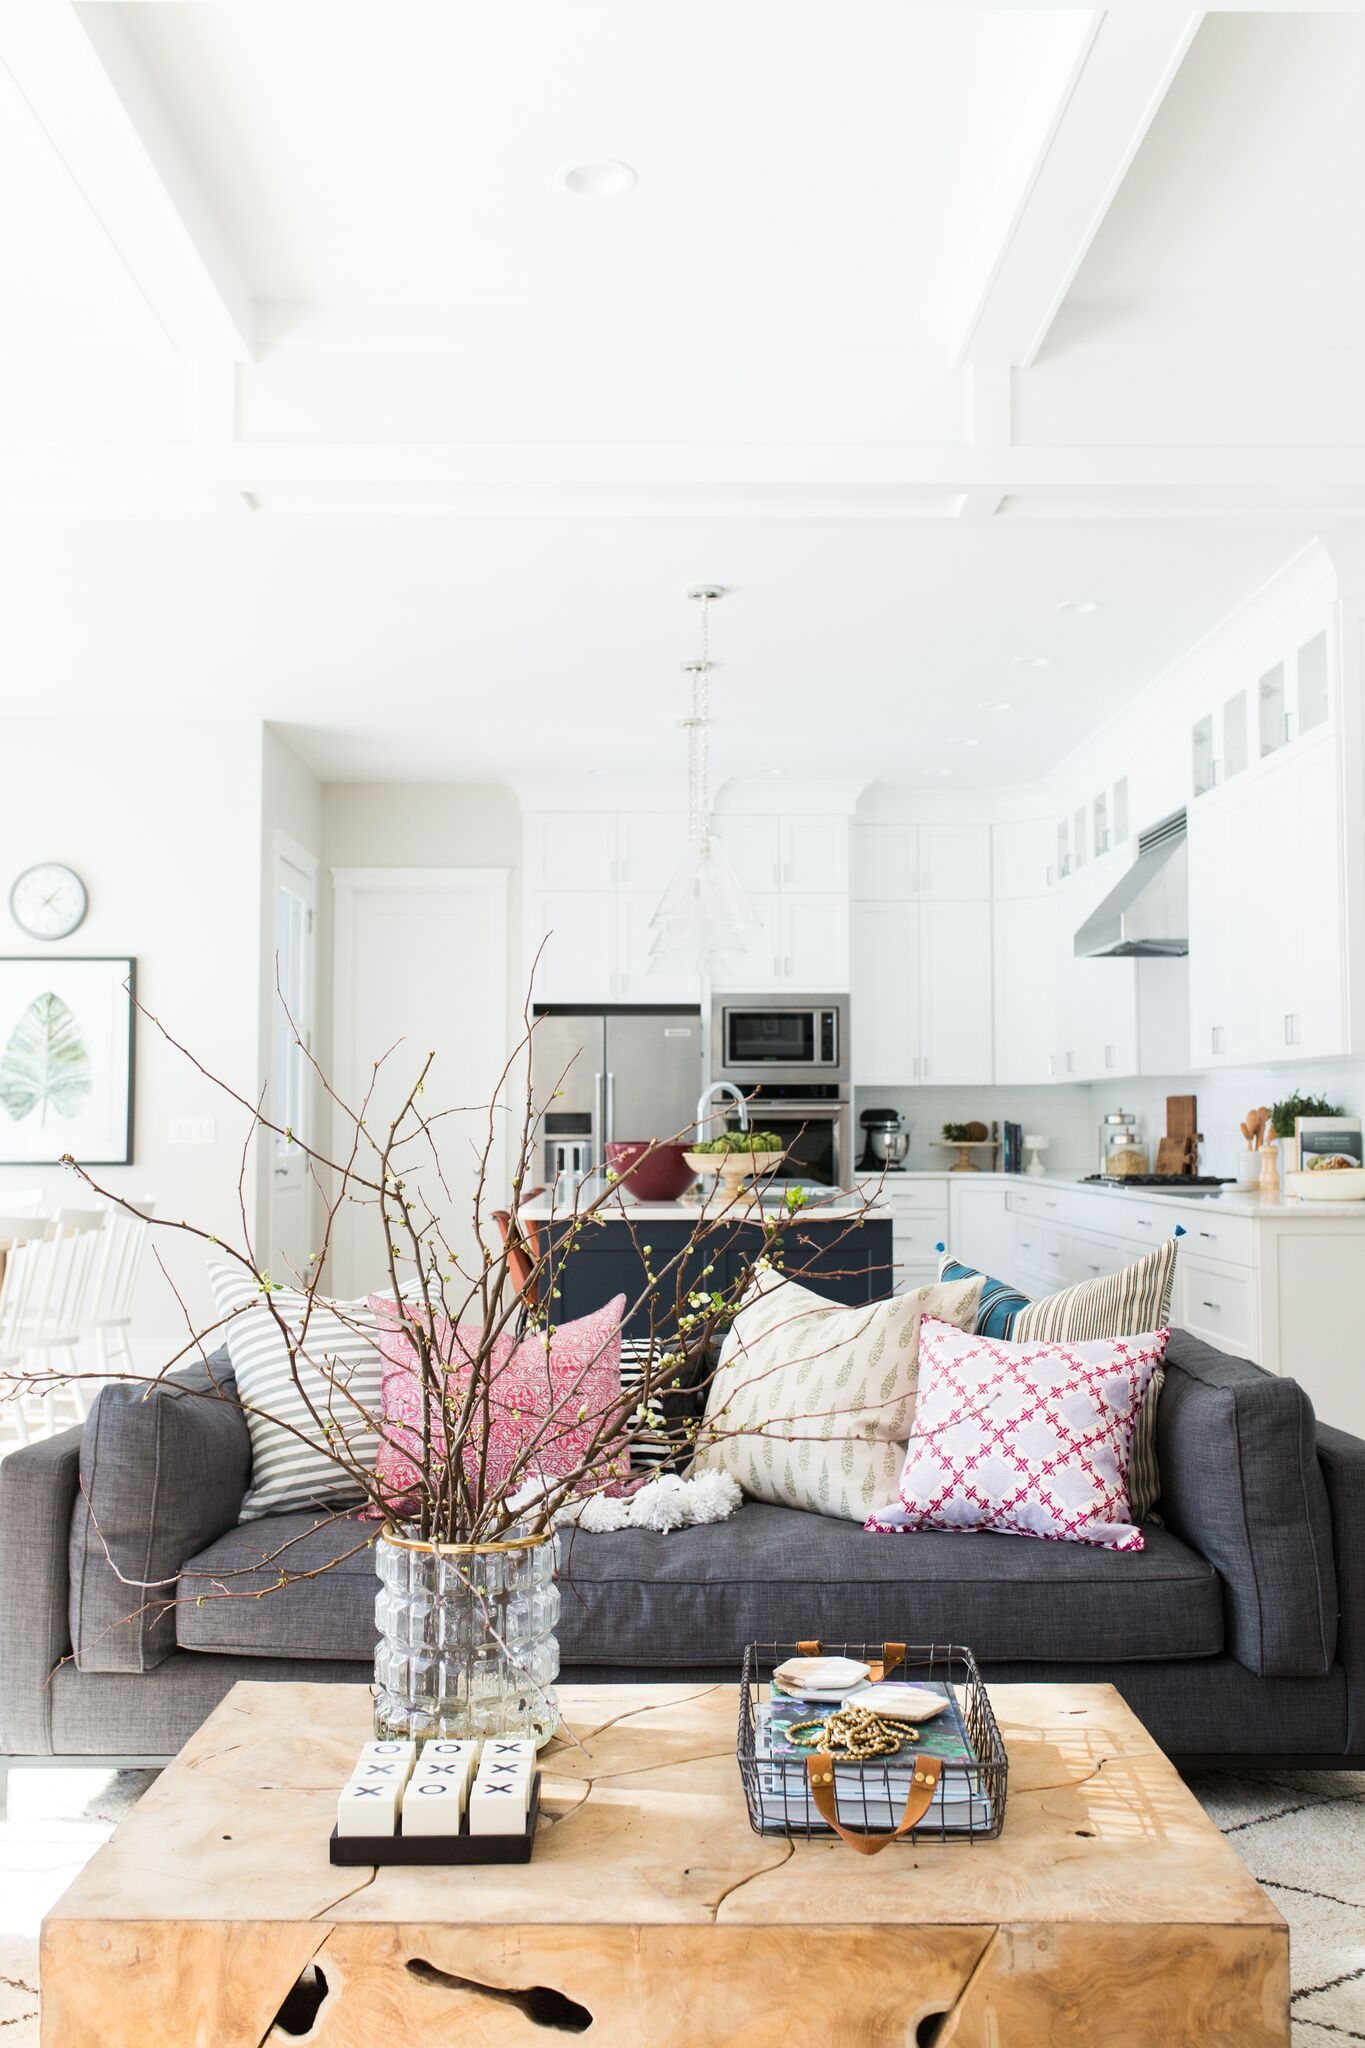 Large center coffee table in front of grey couch